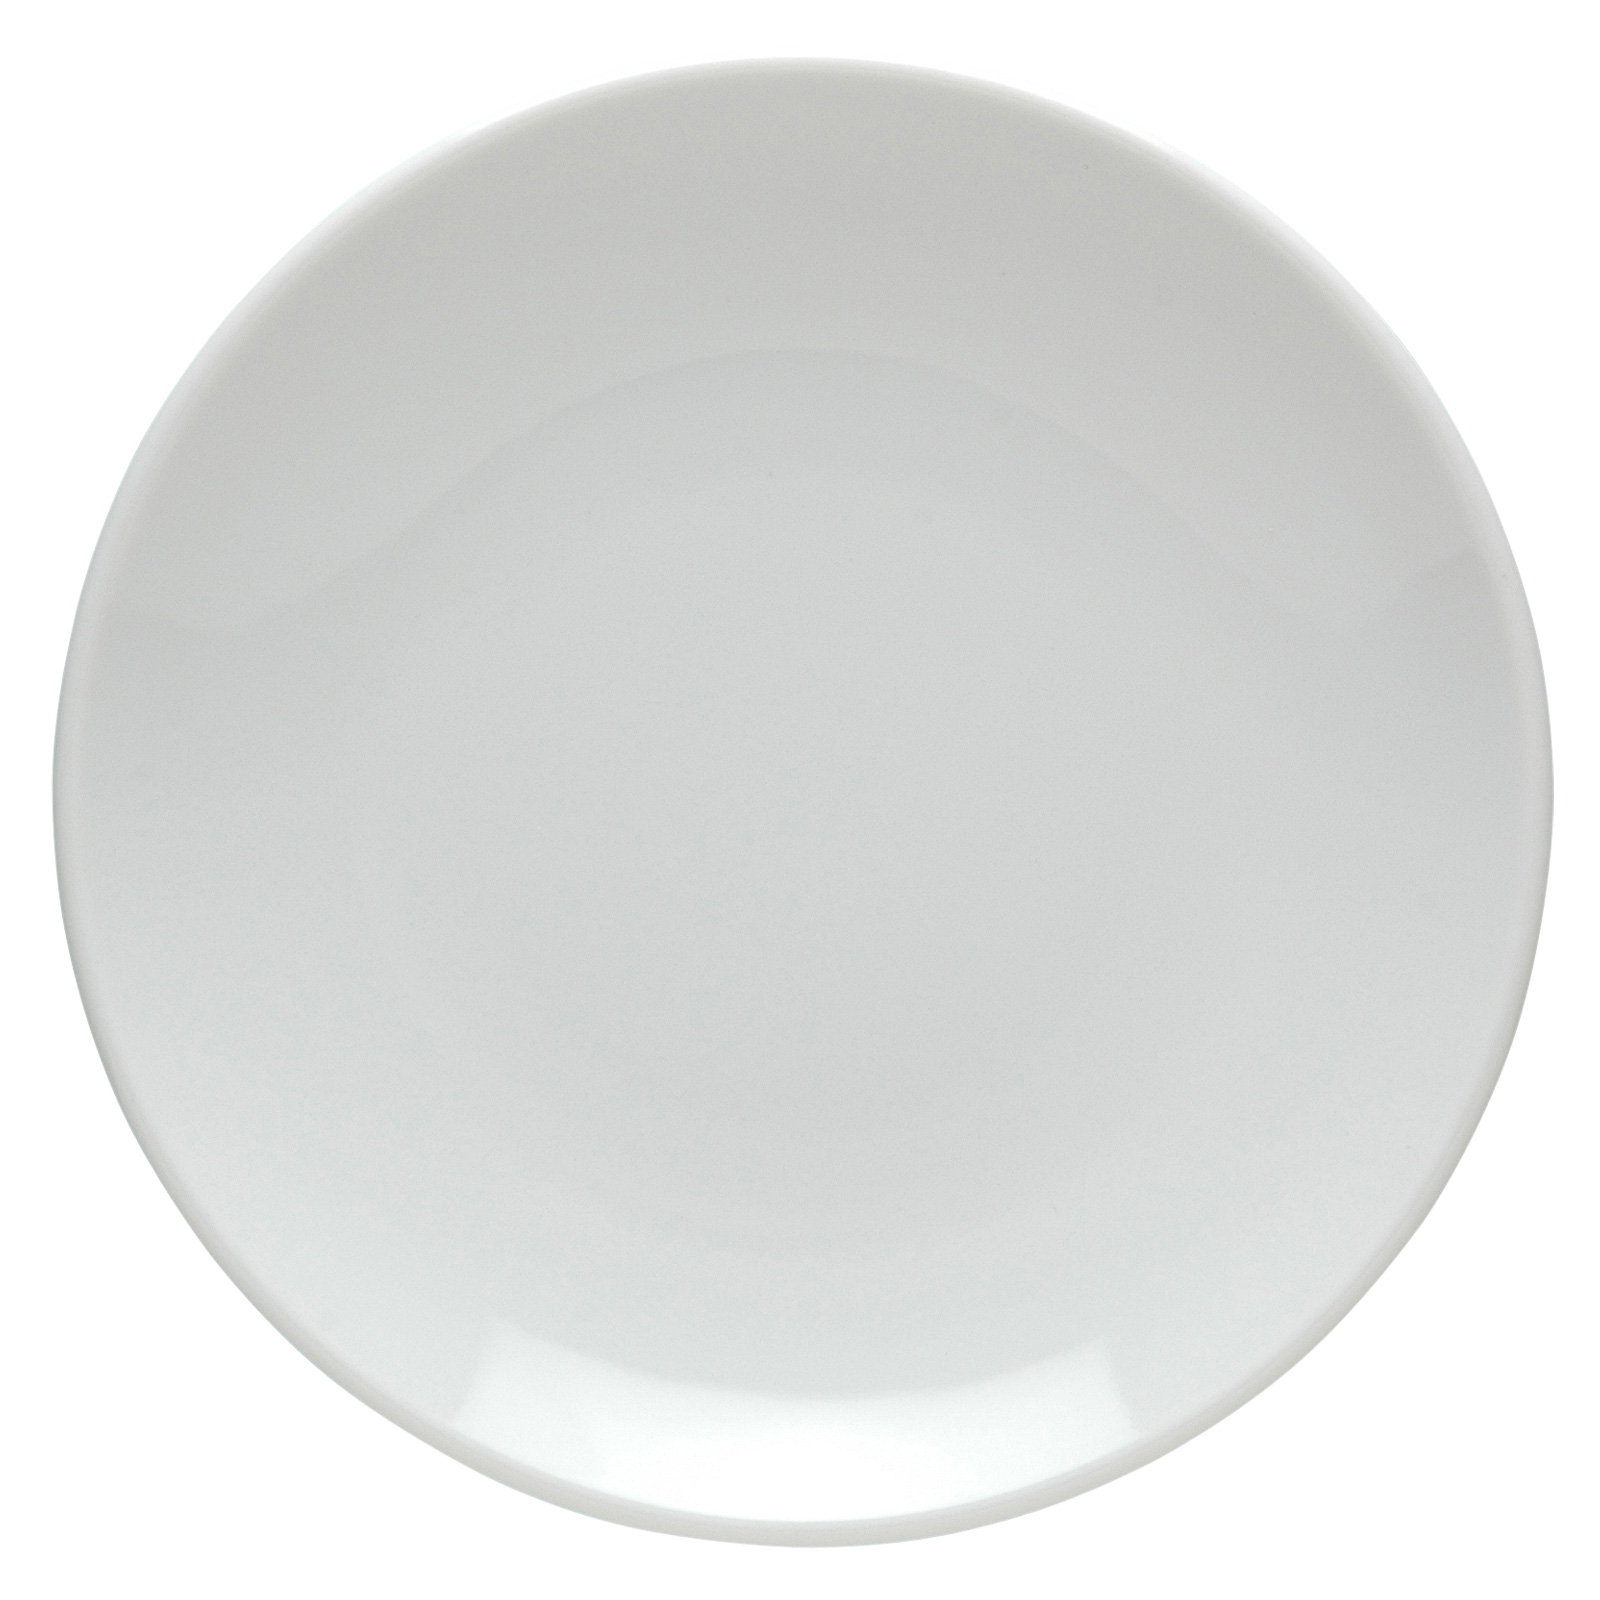 Hotel Collection Plates: The DRH Collection